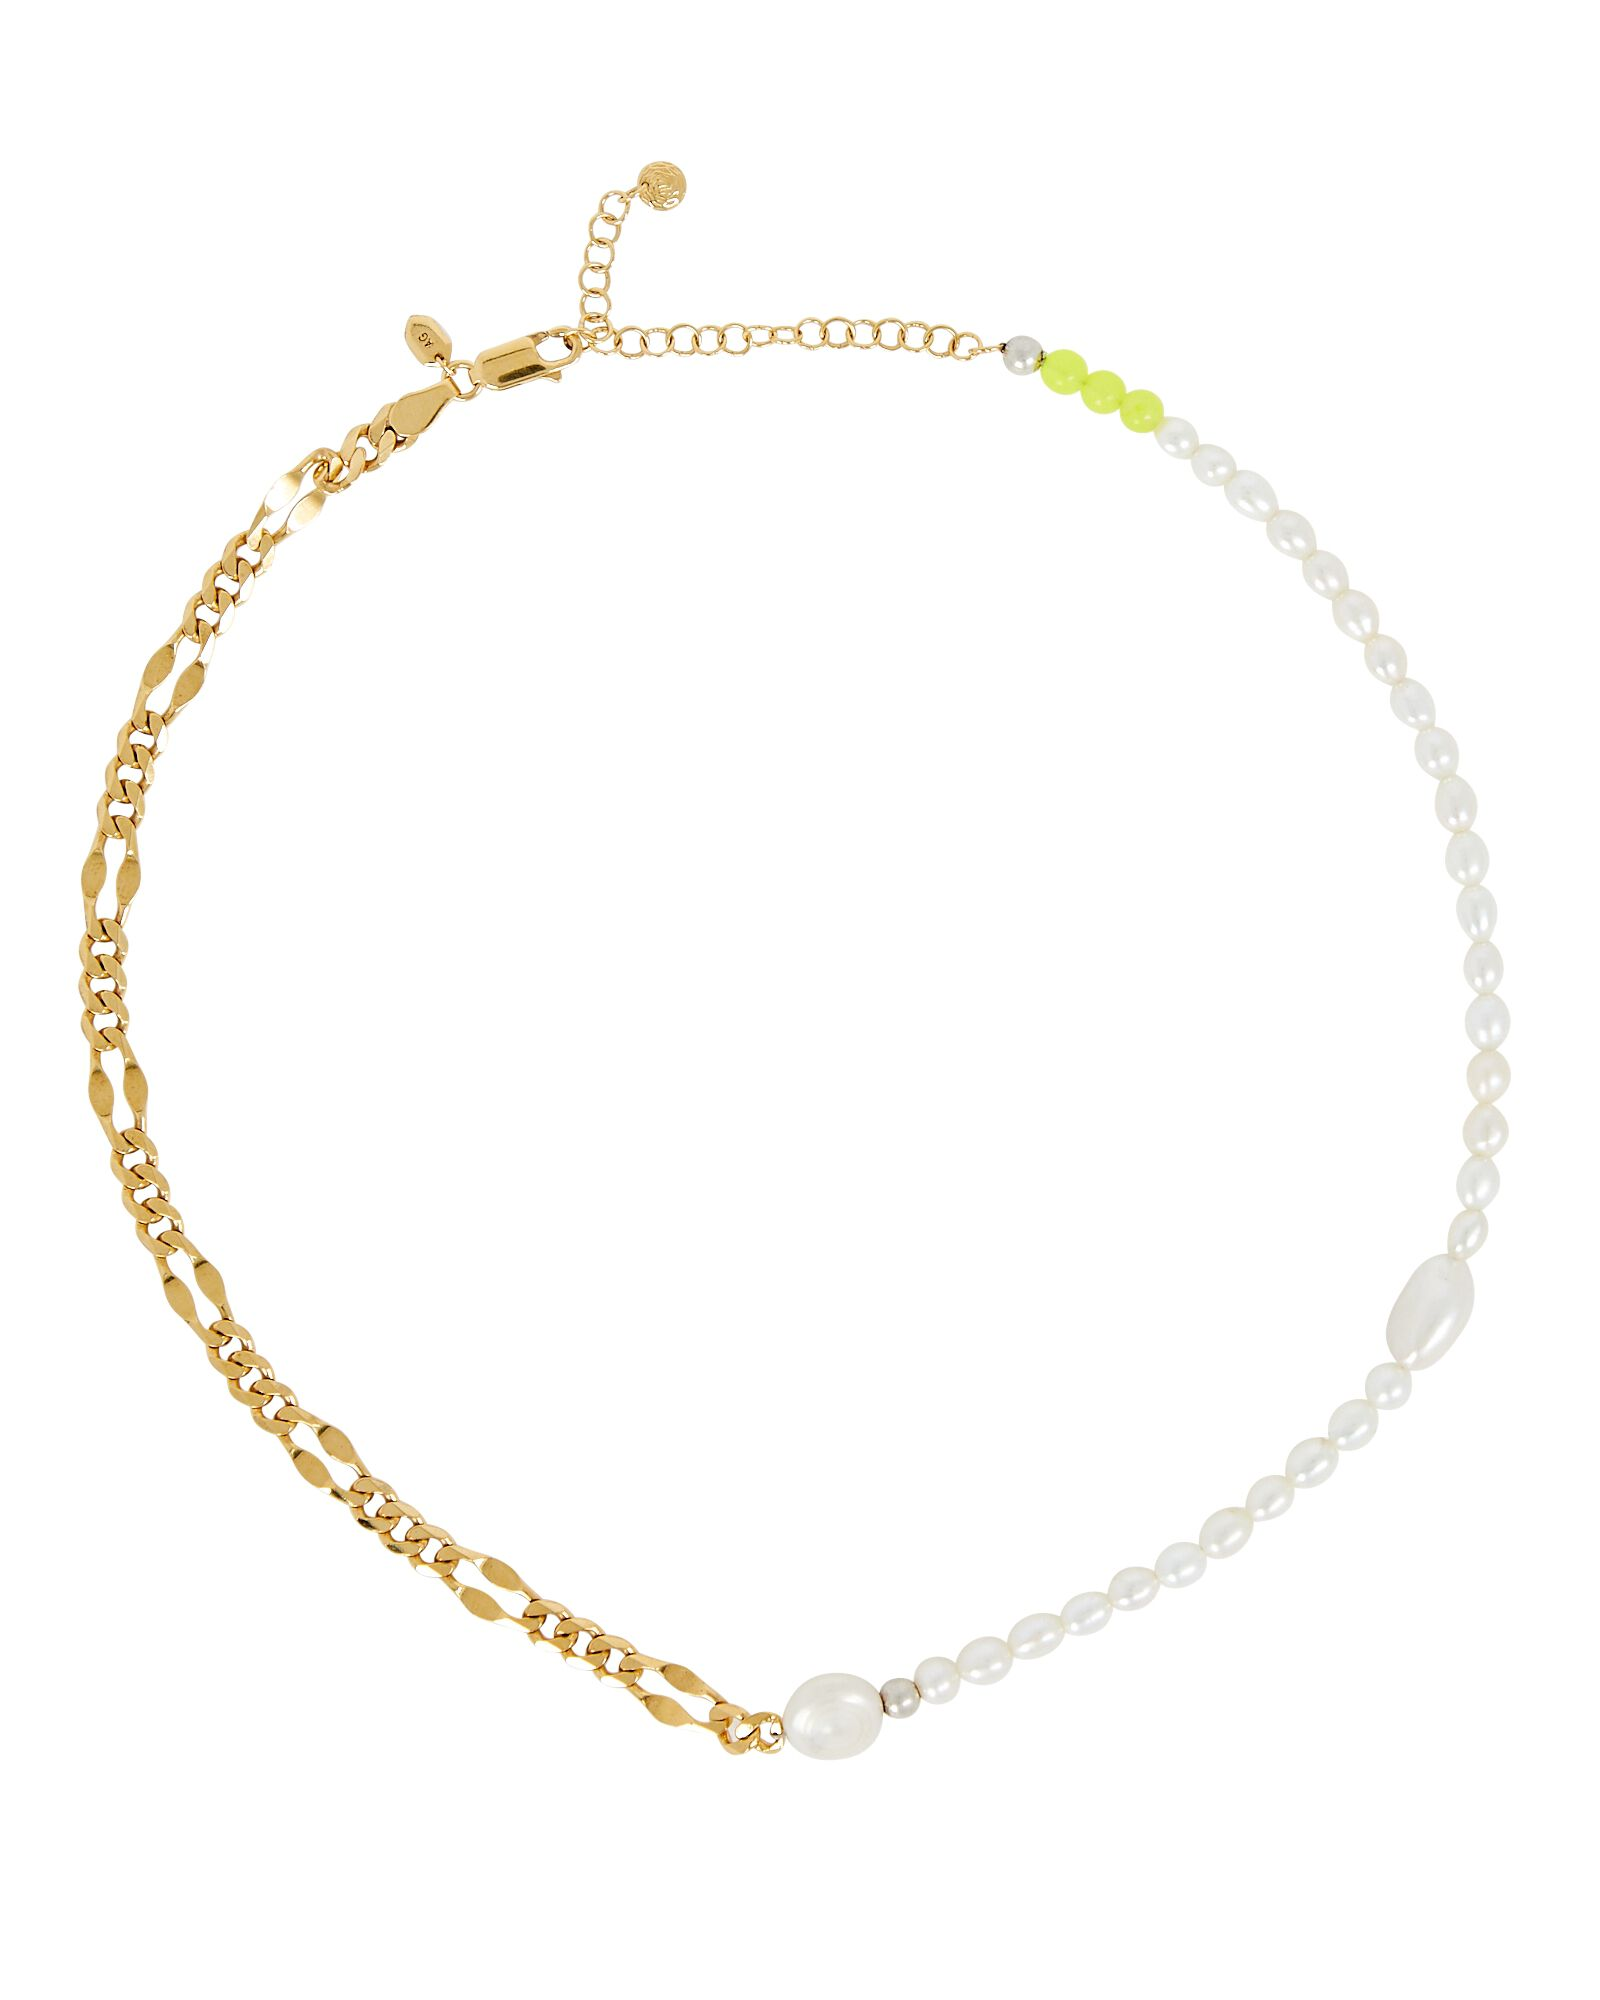 Positano Pearl Chain-Link Necklace, GOLD, hi-res